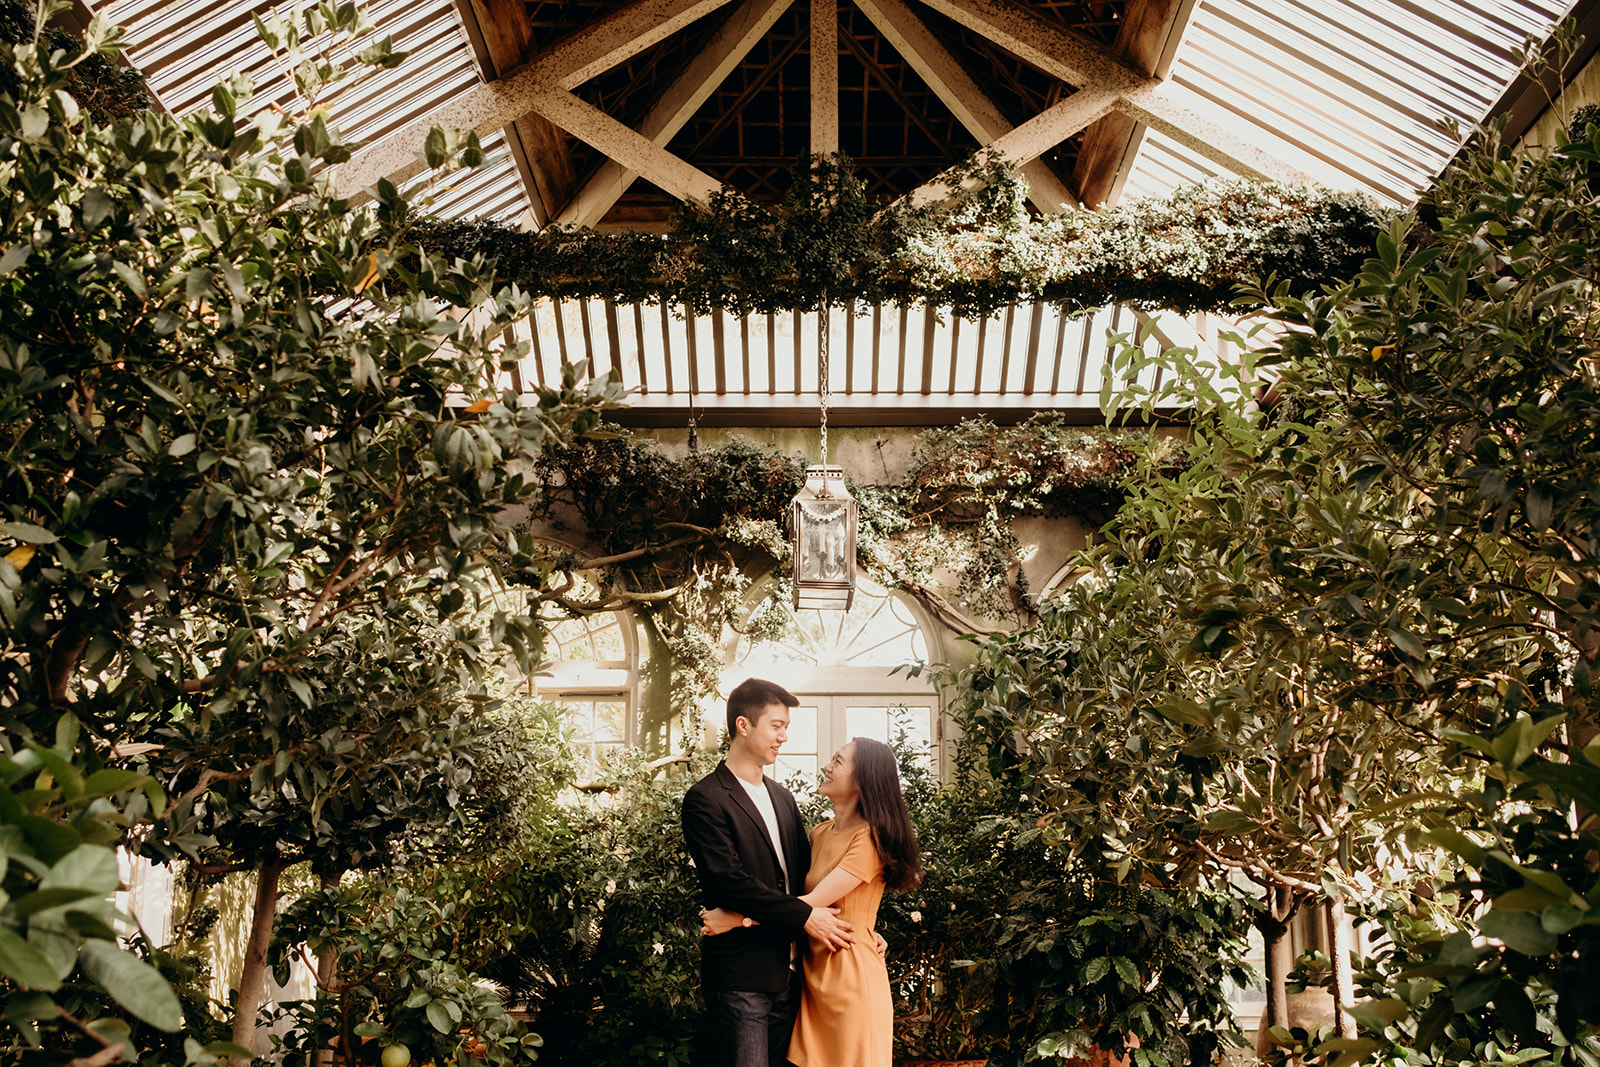 A couple embraces in a greenhouse in the gardens of Dumbarton Oaks.